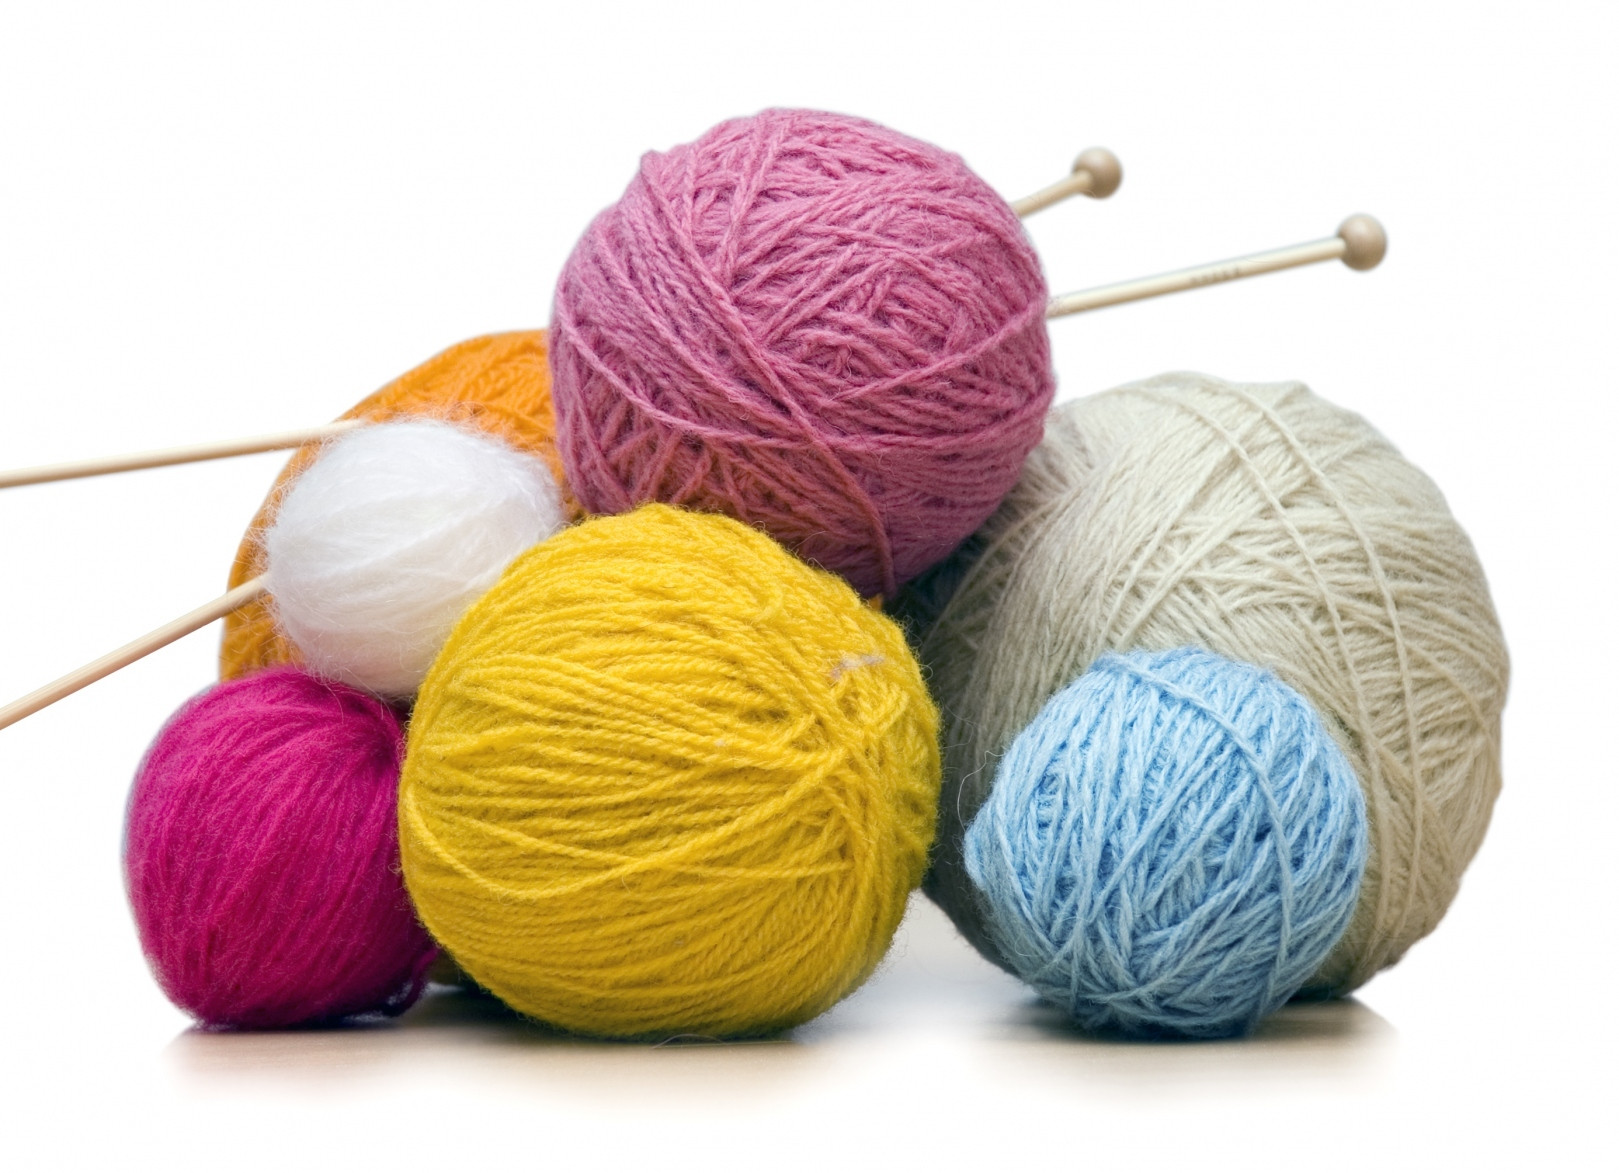 Crochet Yarn New Clean Out Your Closets Donate to Help Knit the Bridge Of Innovative 44 Images Crochet Yarn